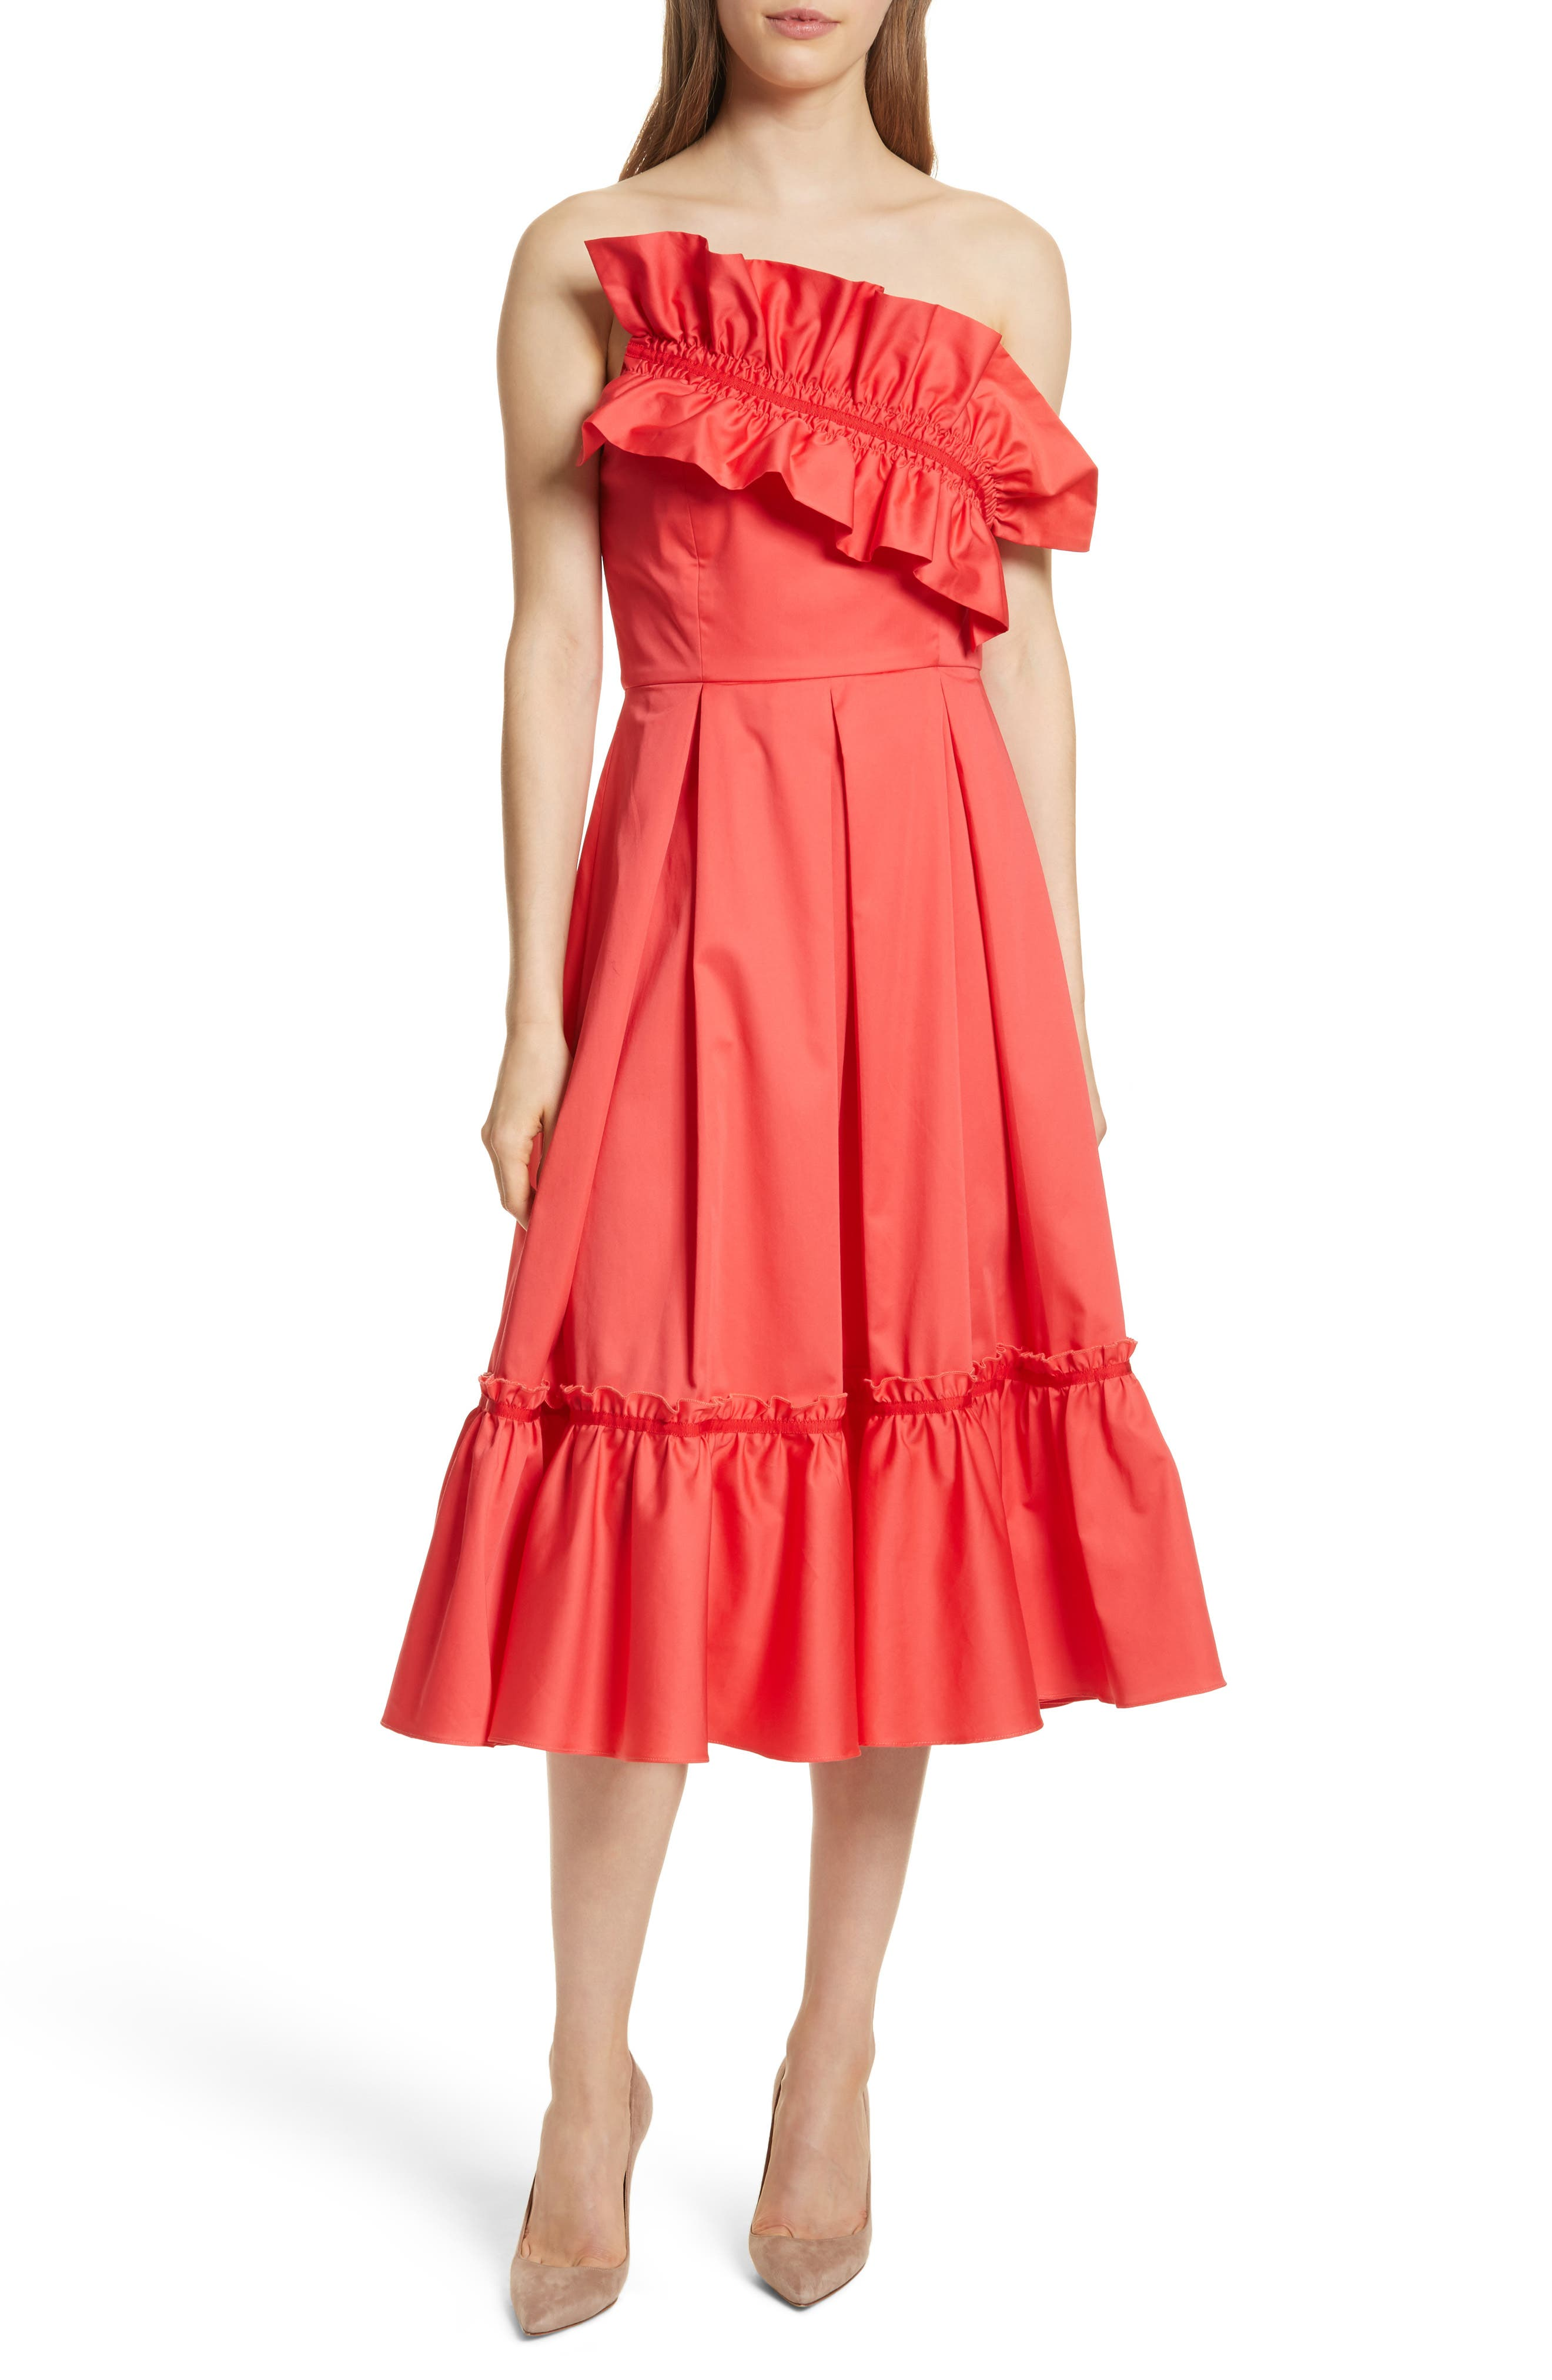 Prose & Poetry Harlow Ruffle Trim Strapless Dress,                         Main,                         color,